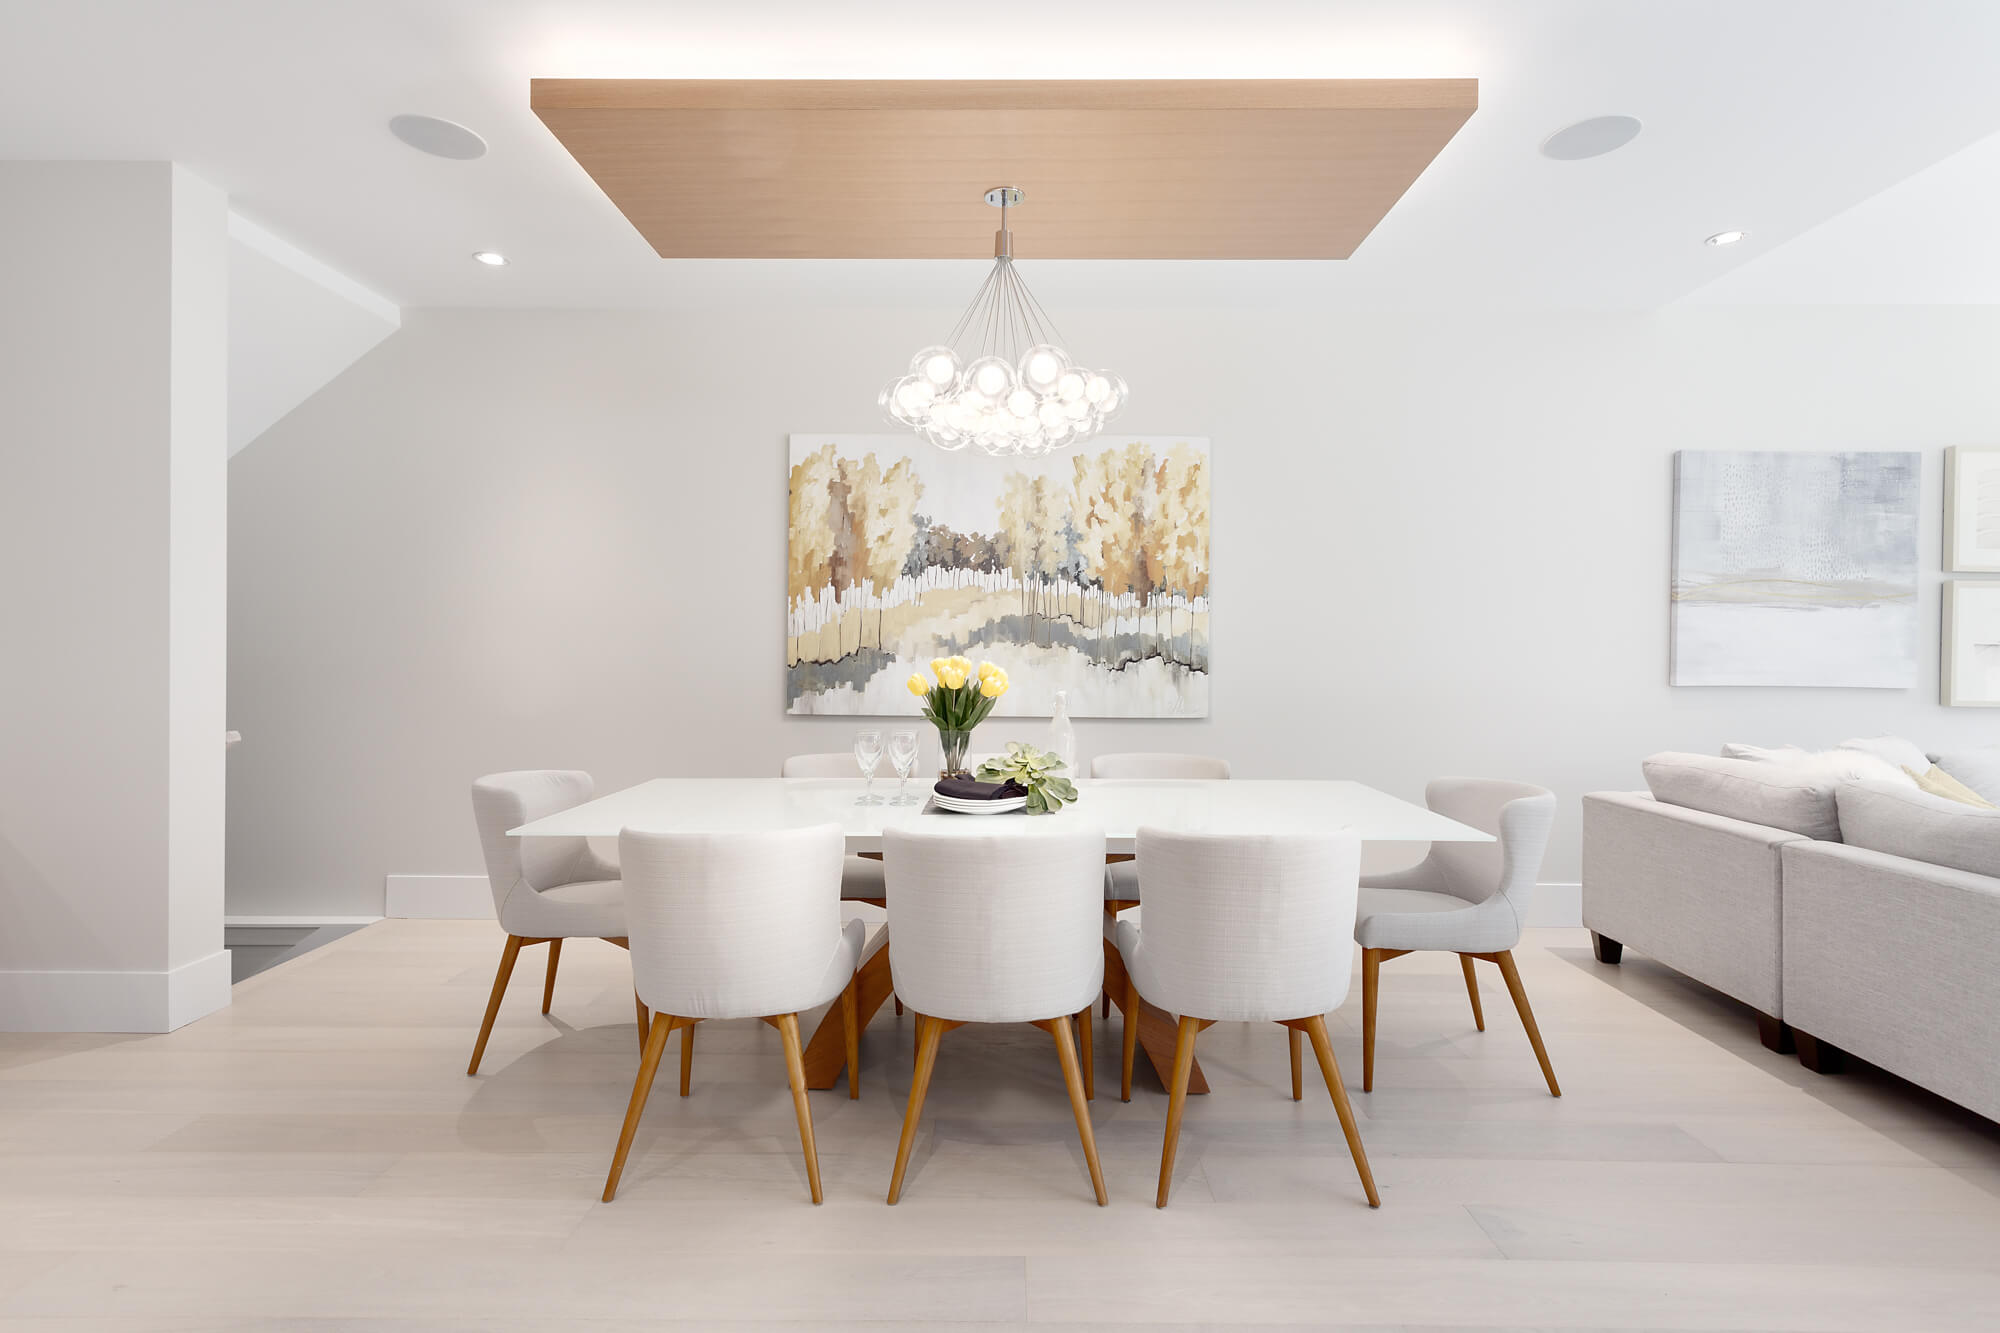 Unique Lighting for New Dining Room